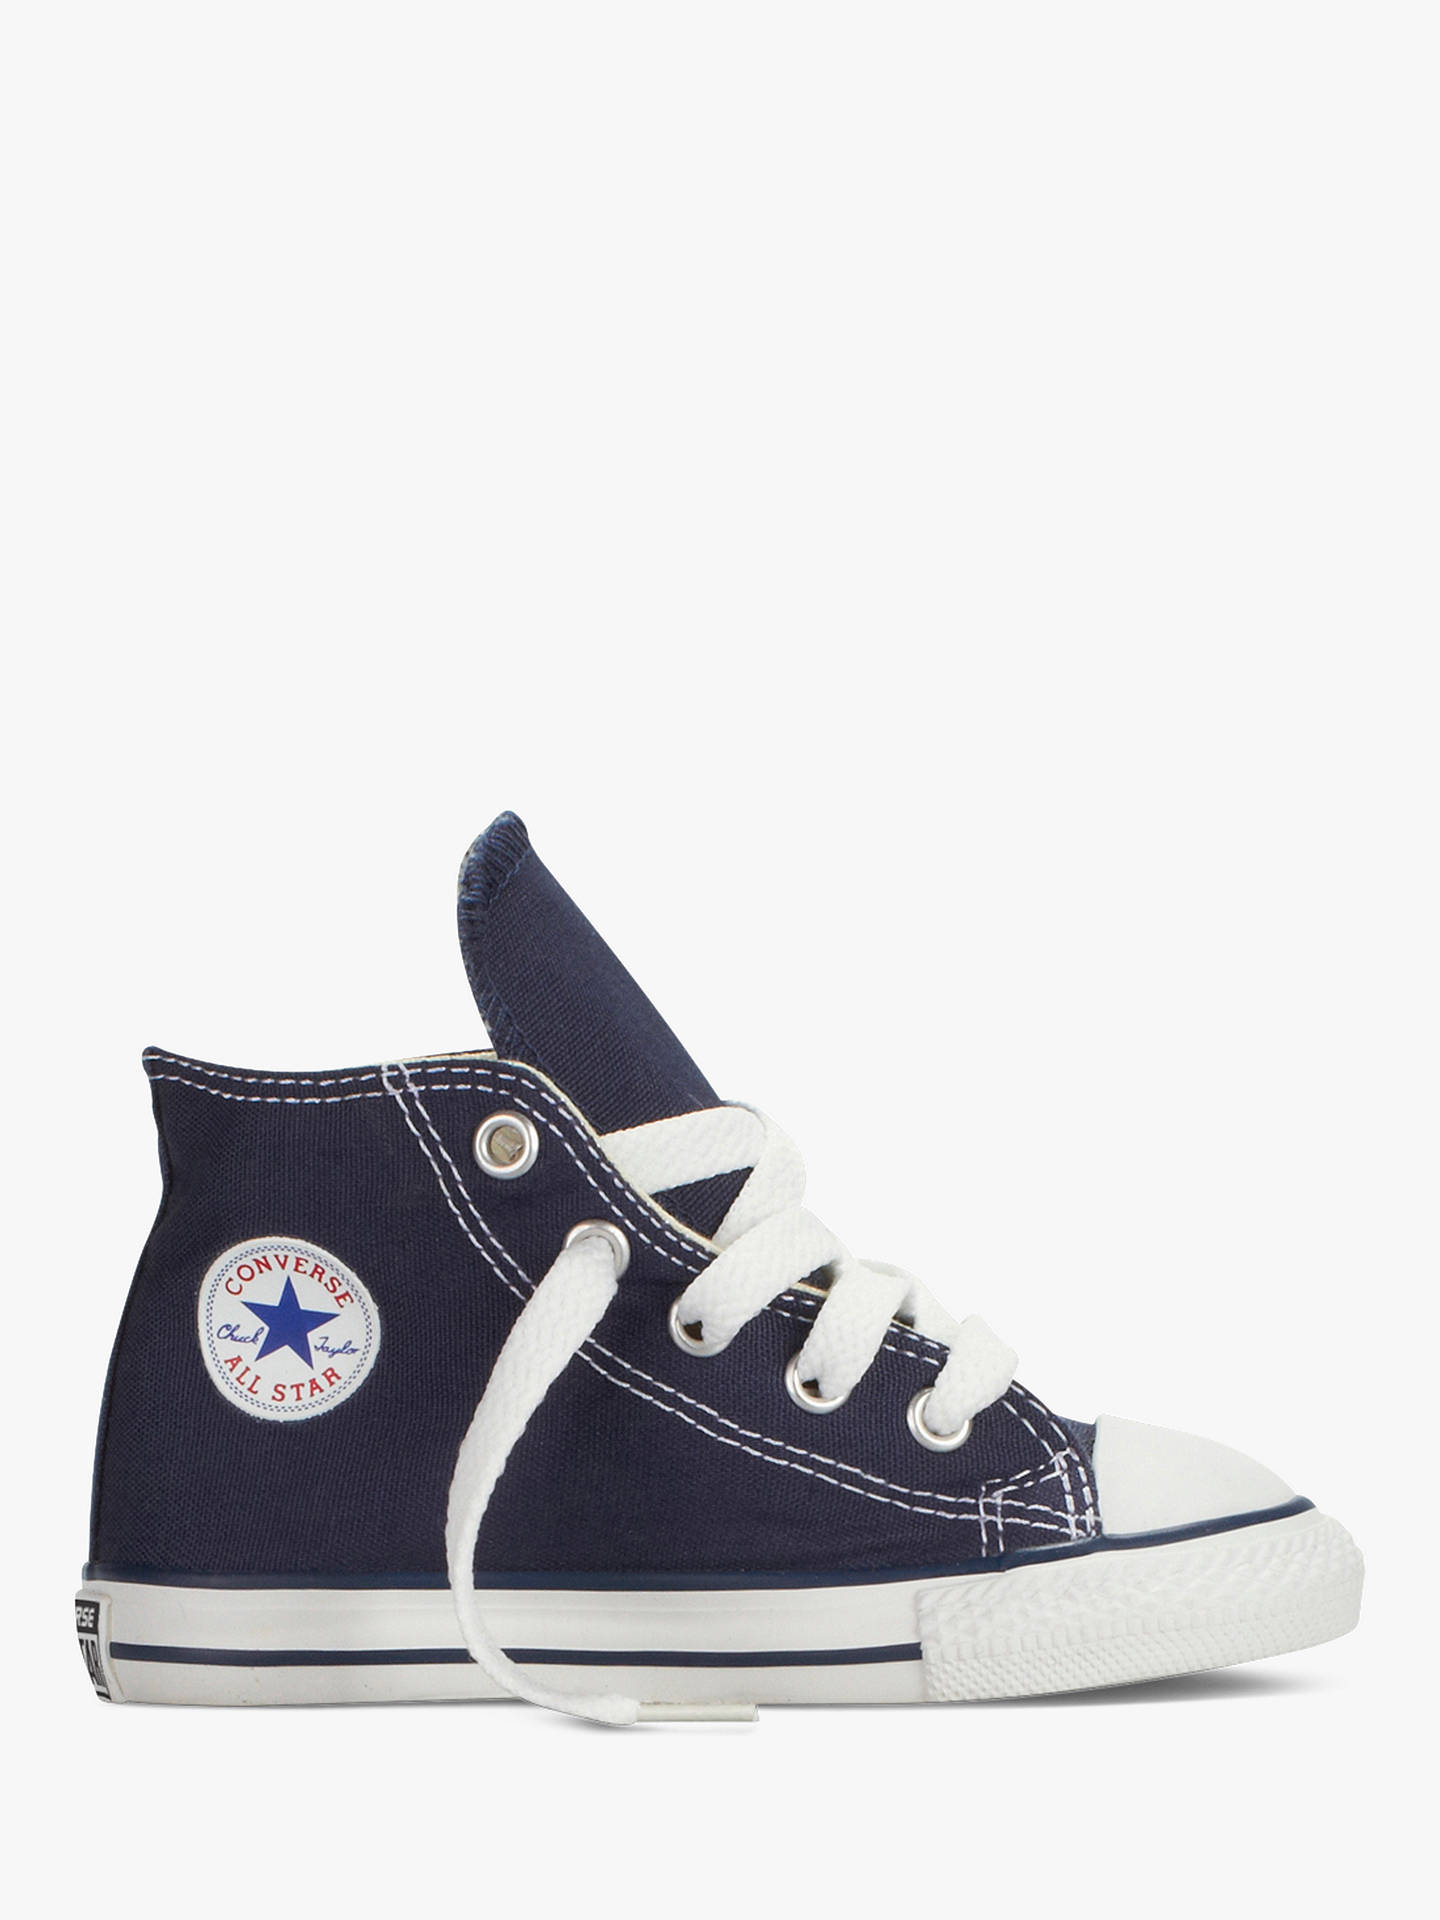 8ba3c046c682 Converse Children s Chuck Taylor All Star Core Hi-Top Trainers at ...